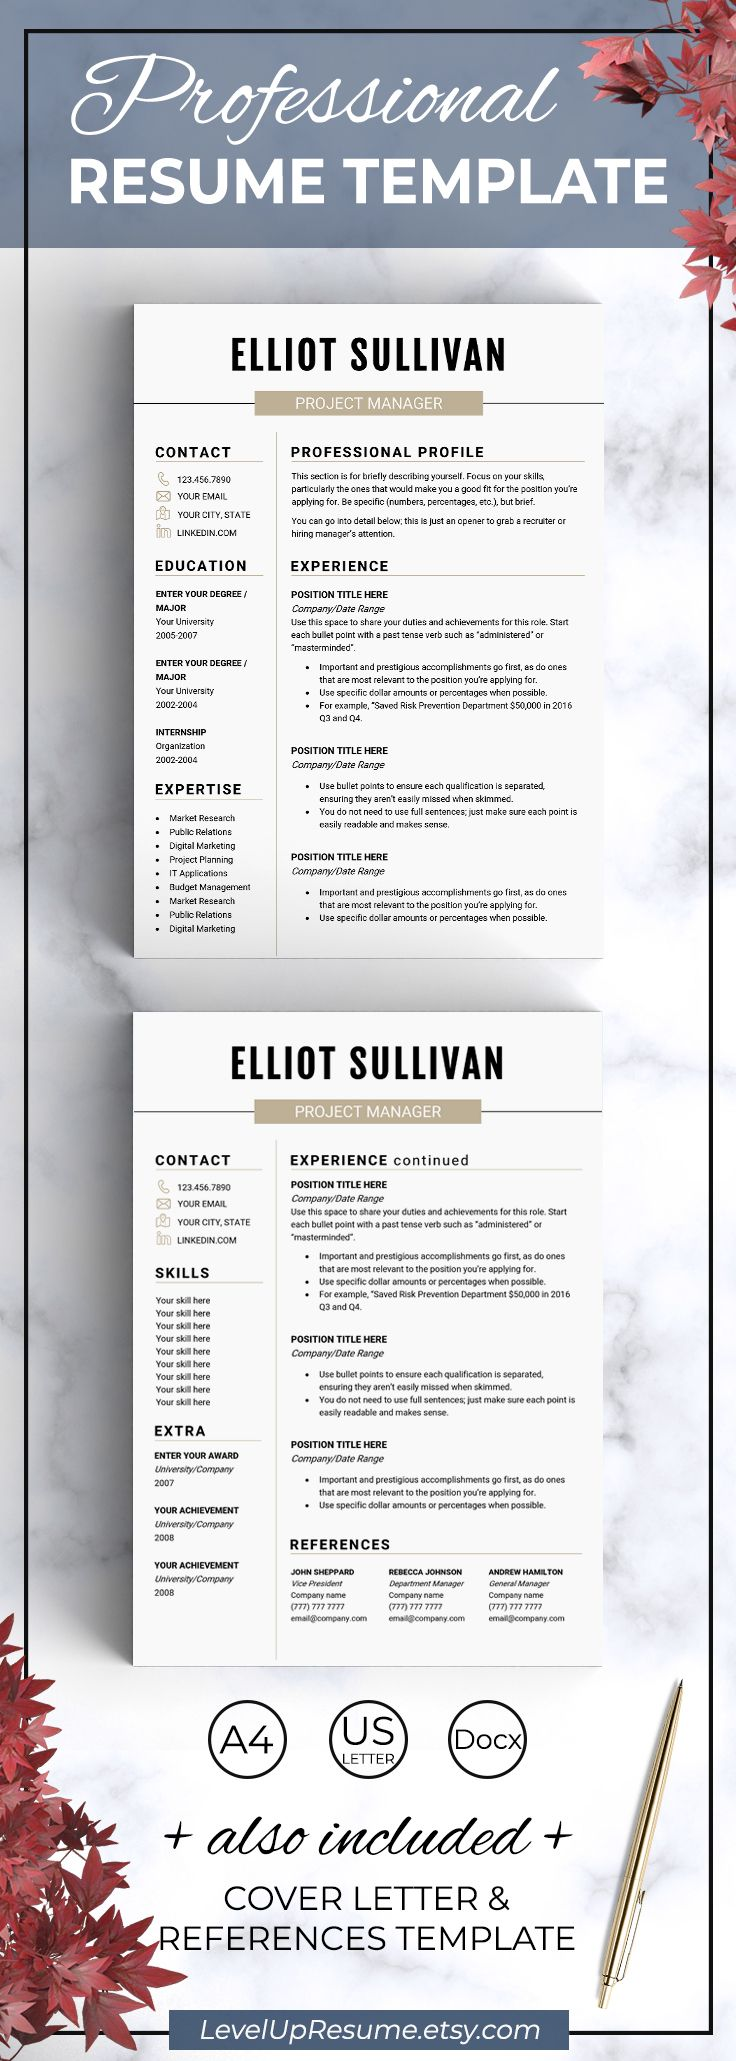 Modern resume template. Professional resume design. Career advice. Job search. Get hired! Click on the link or save the pin to your board >>>>> #career #job #resume #resumetemplate